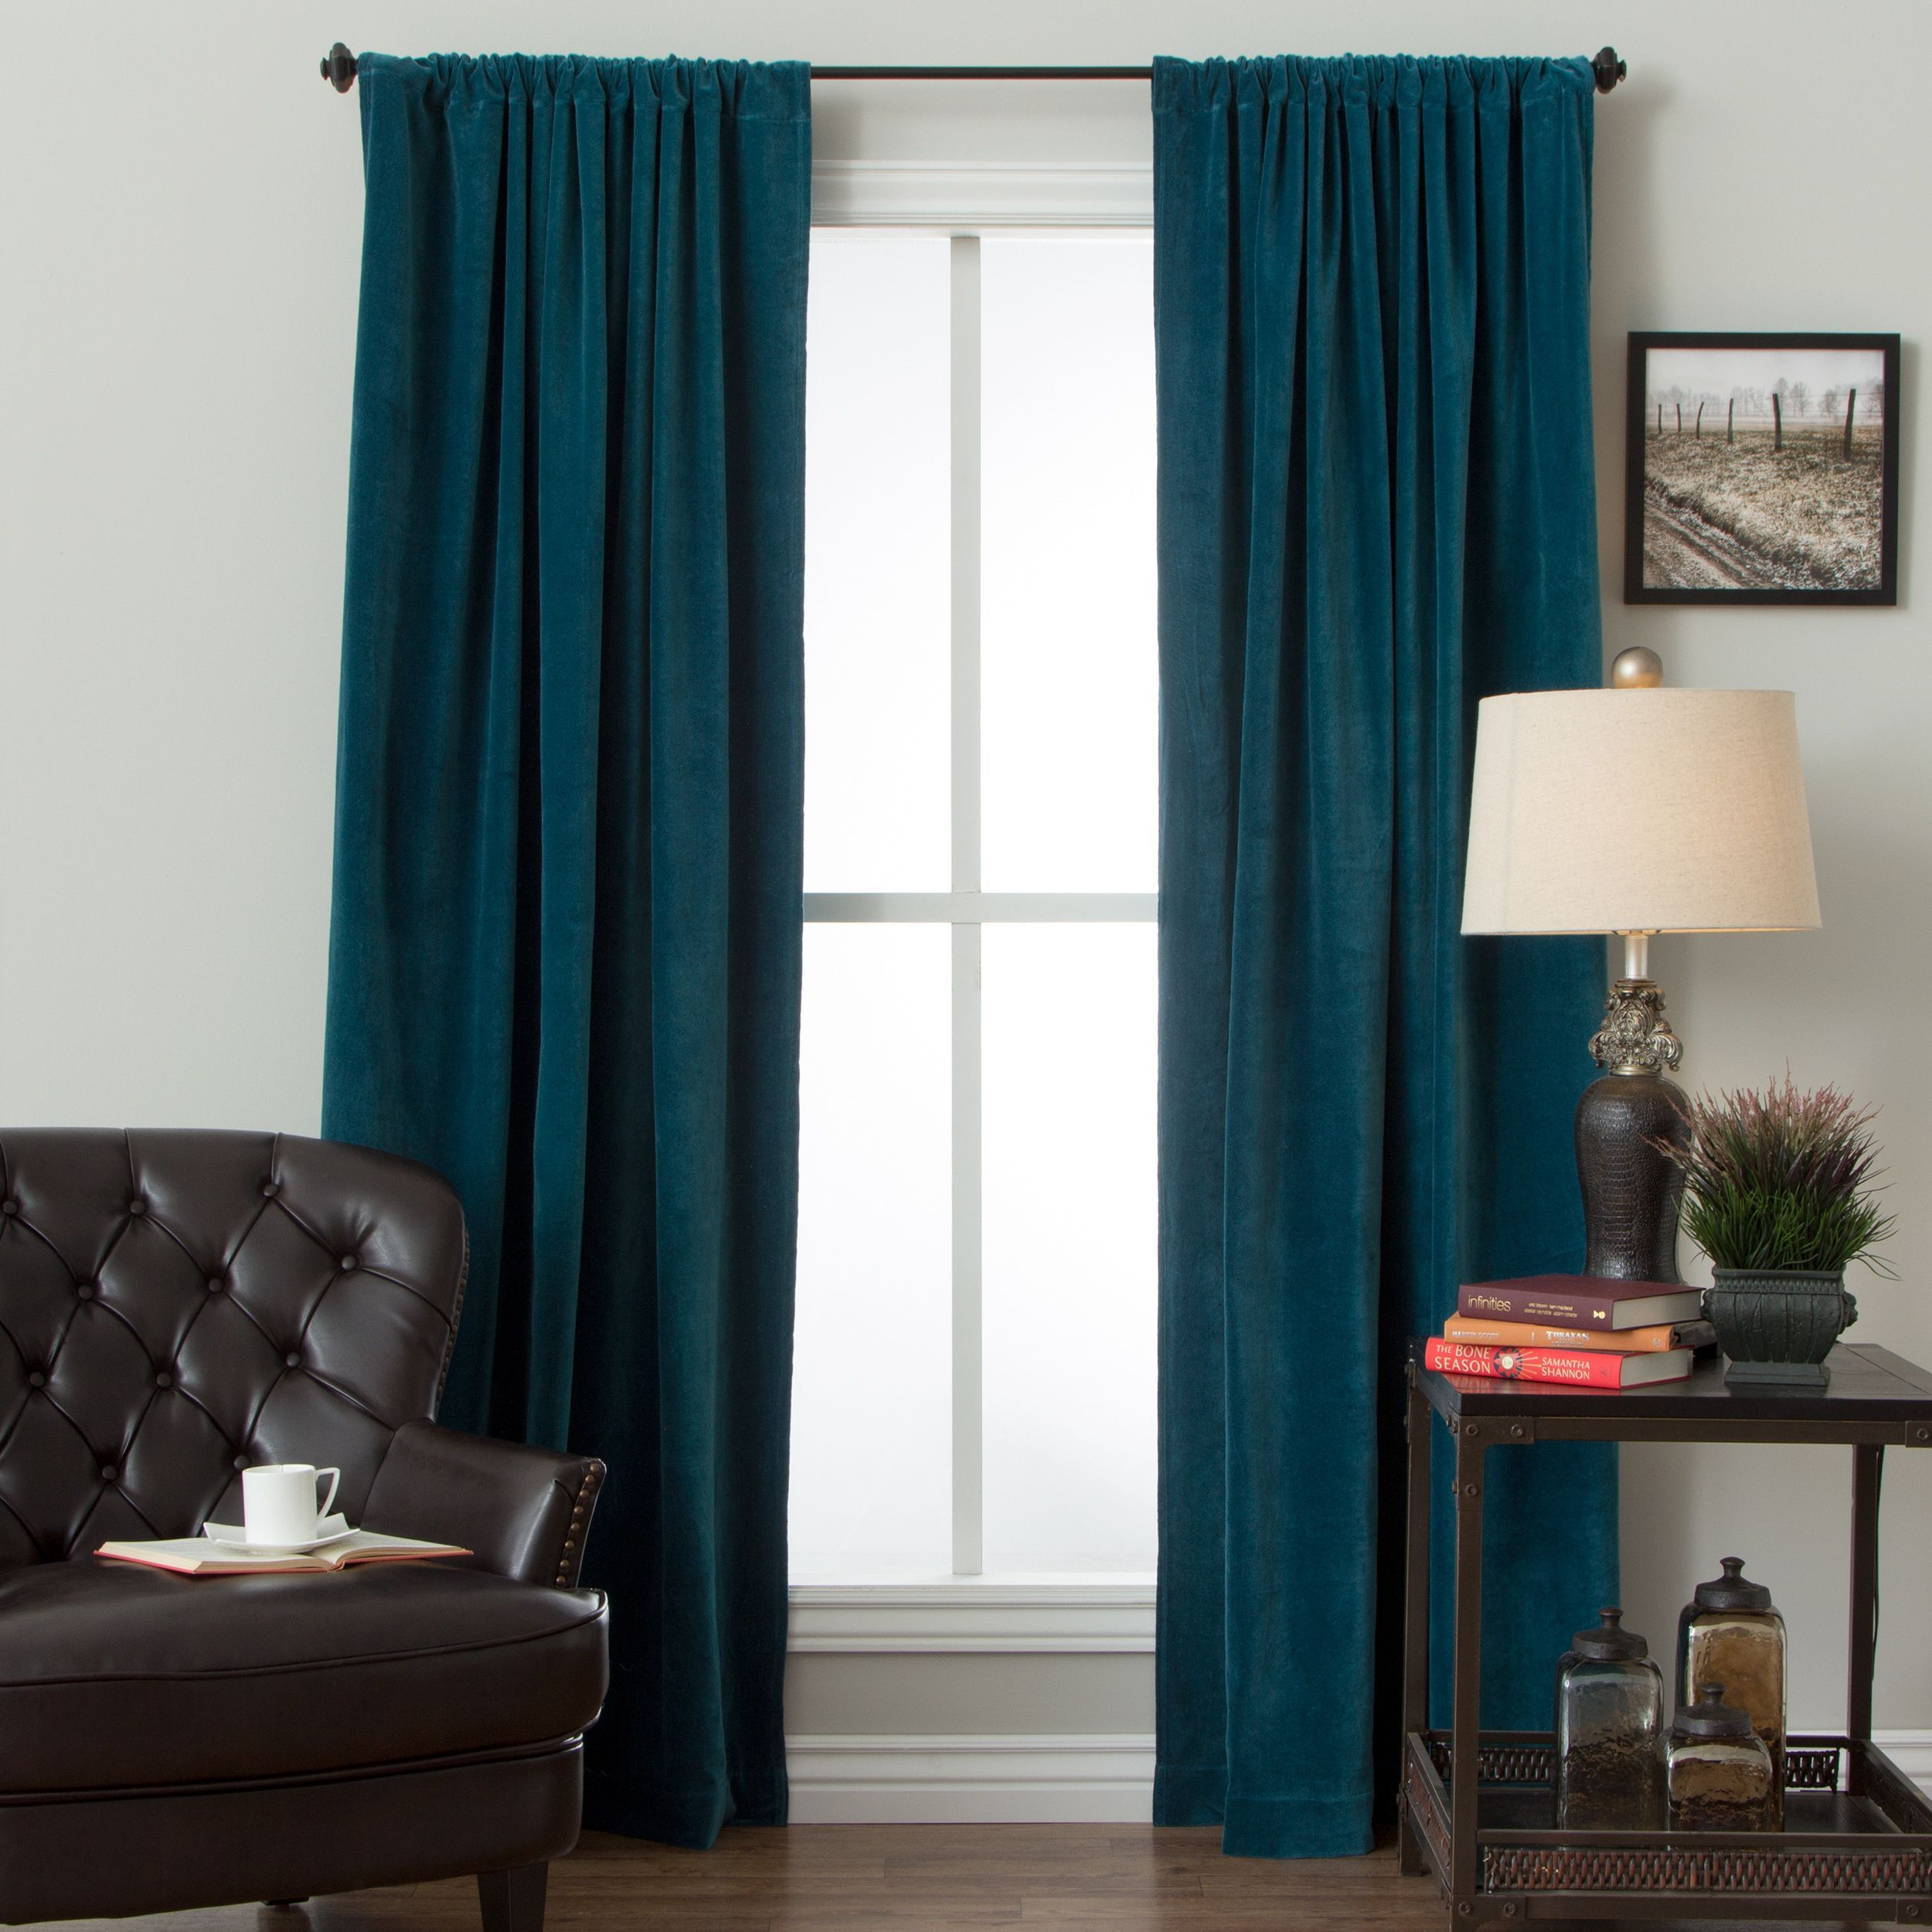 get back woven tab striped cheap sheer panels chenille quotations for guides curtain velvet on faux curtains find deconovo living shopping deals linen